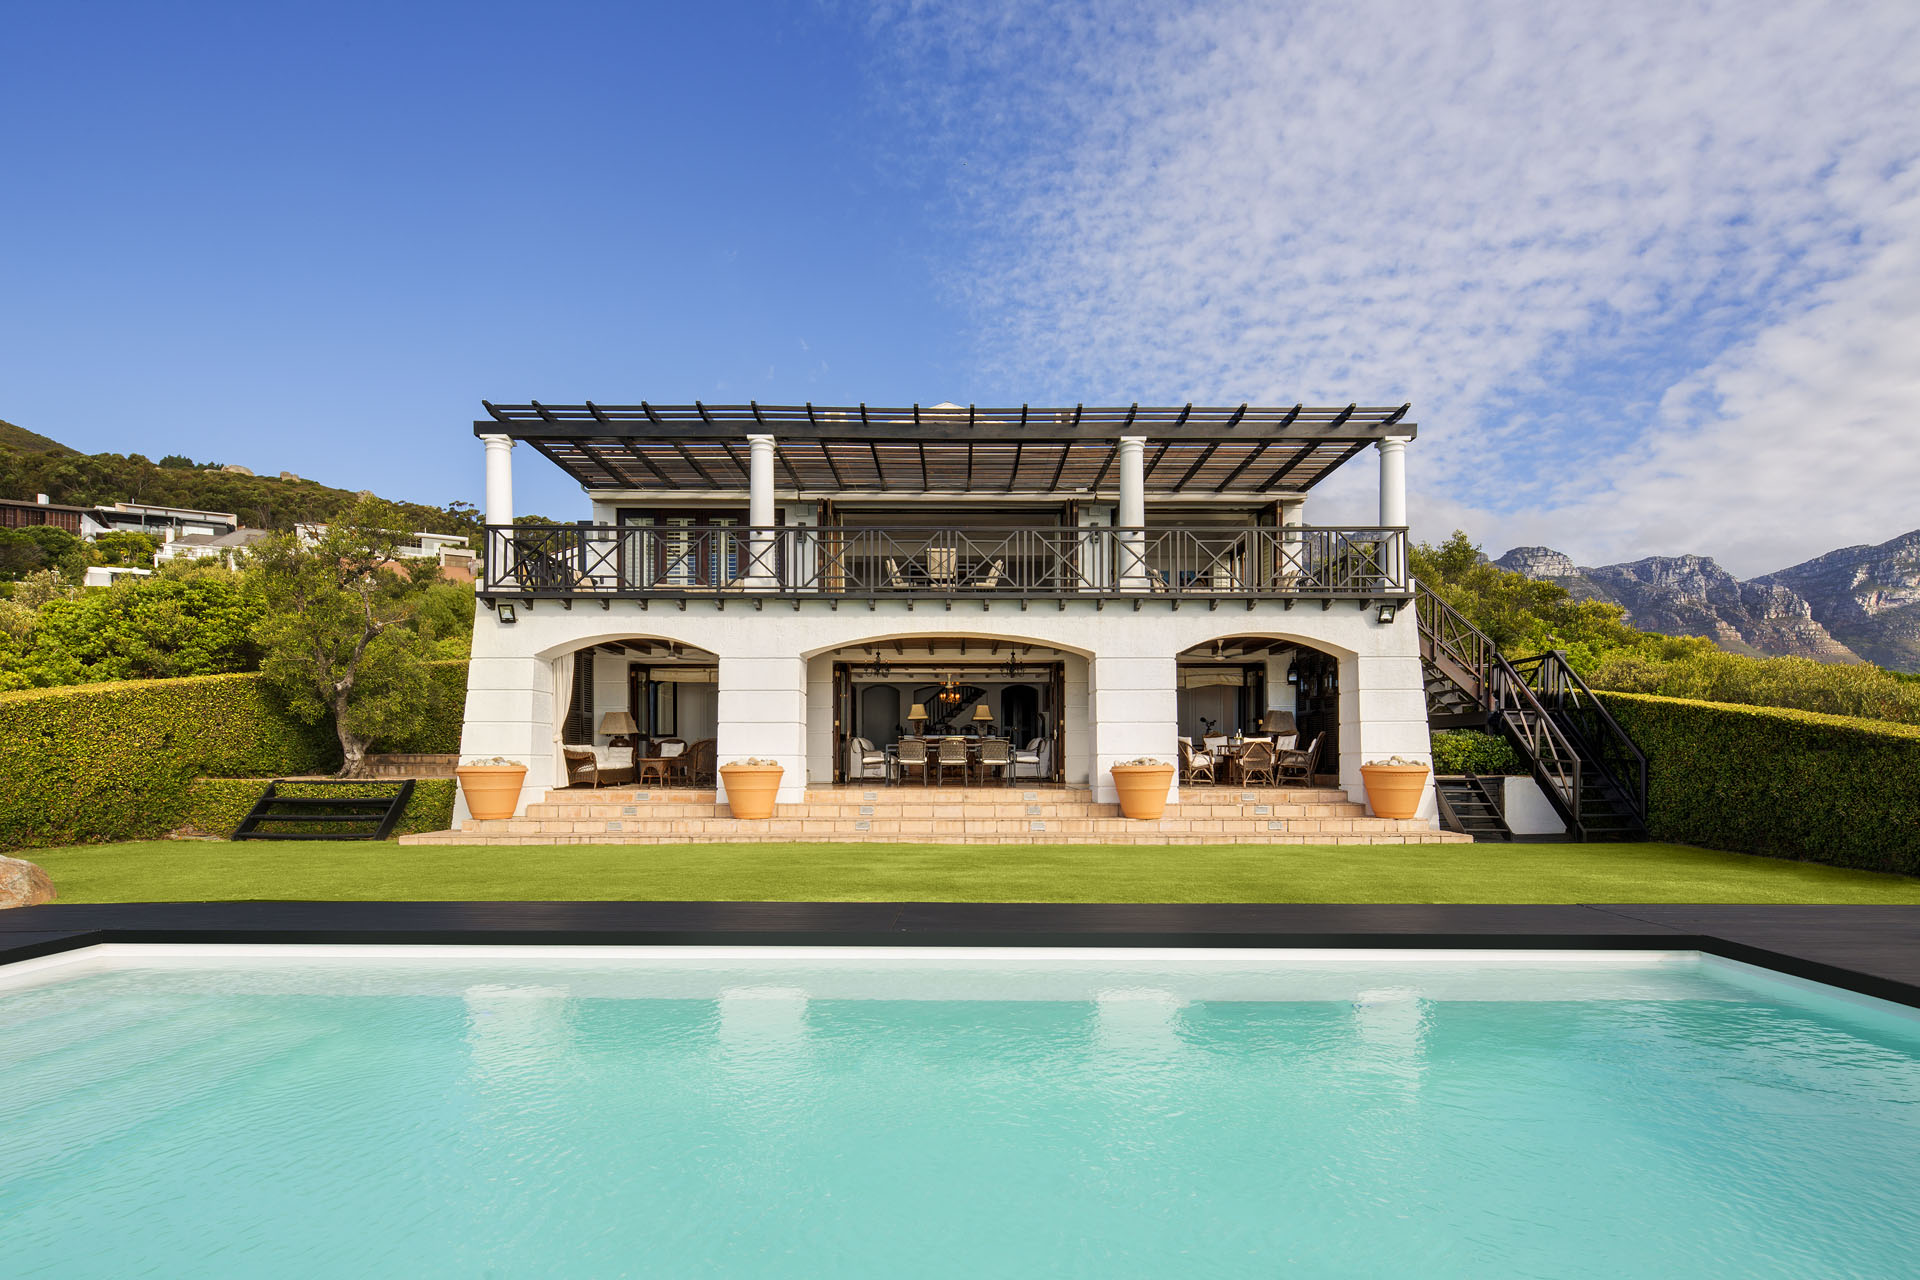 LA MER - Camps Bay / CliftonFrom R 42,000.00 P/N